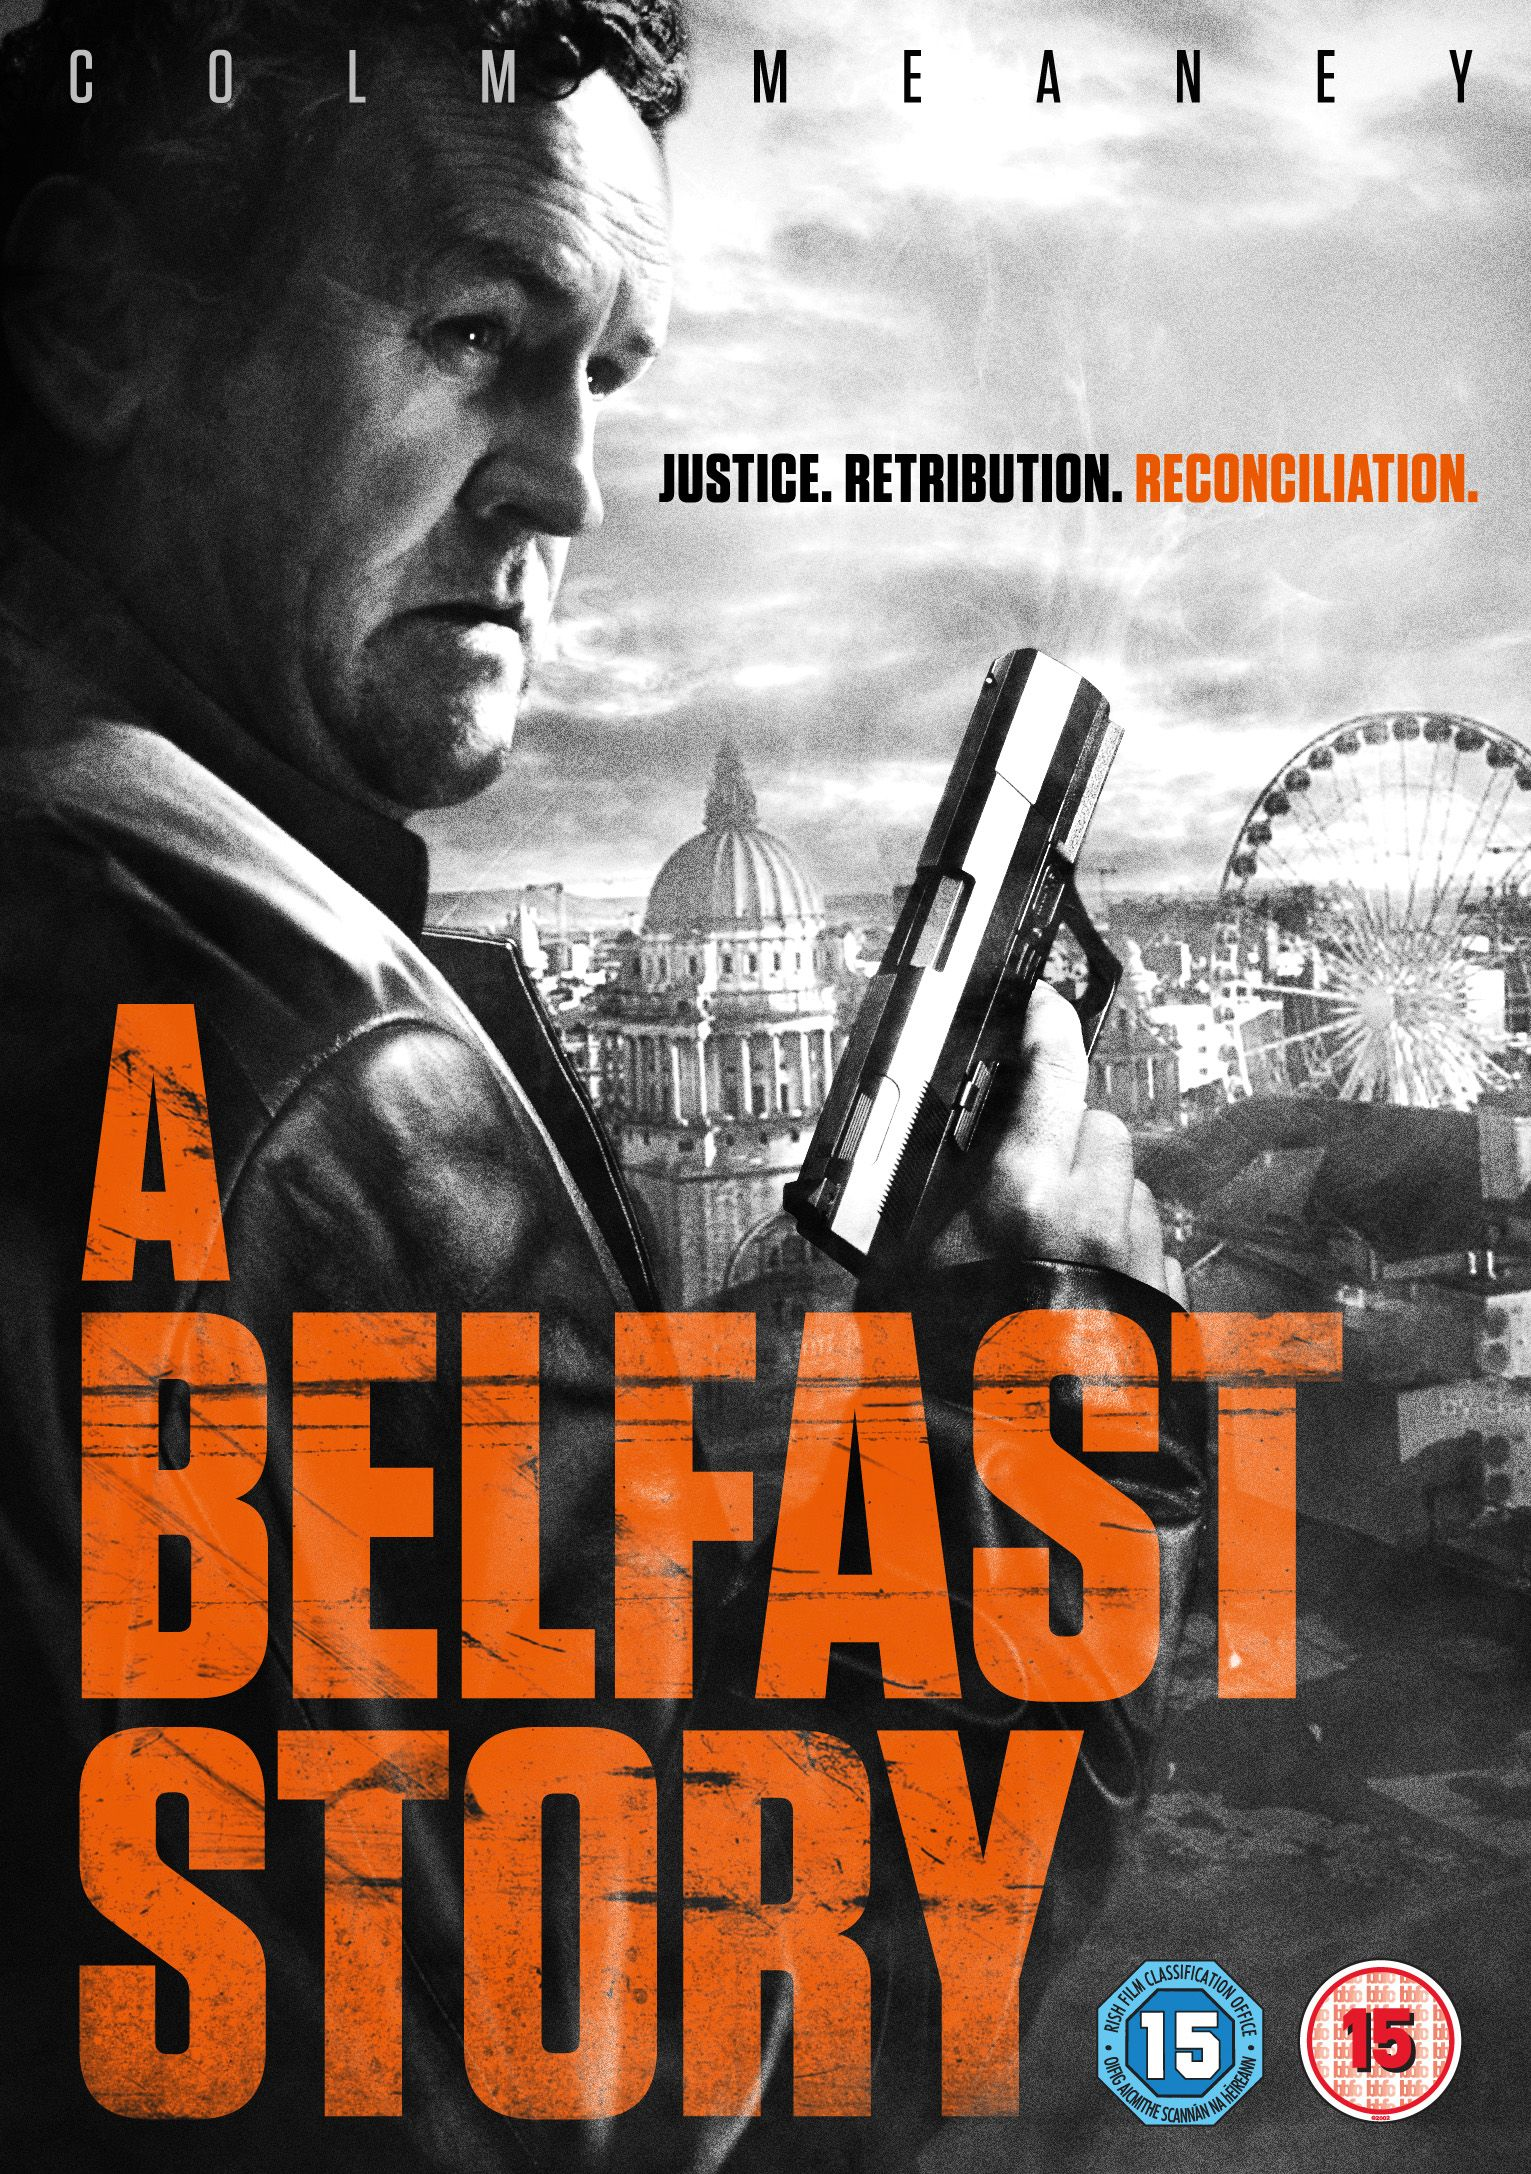 A Belfast Story Full films, Film, Now, then movie